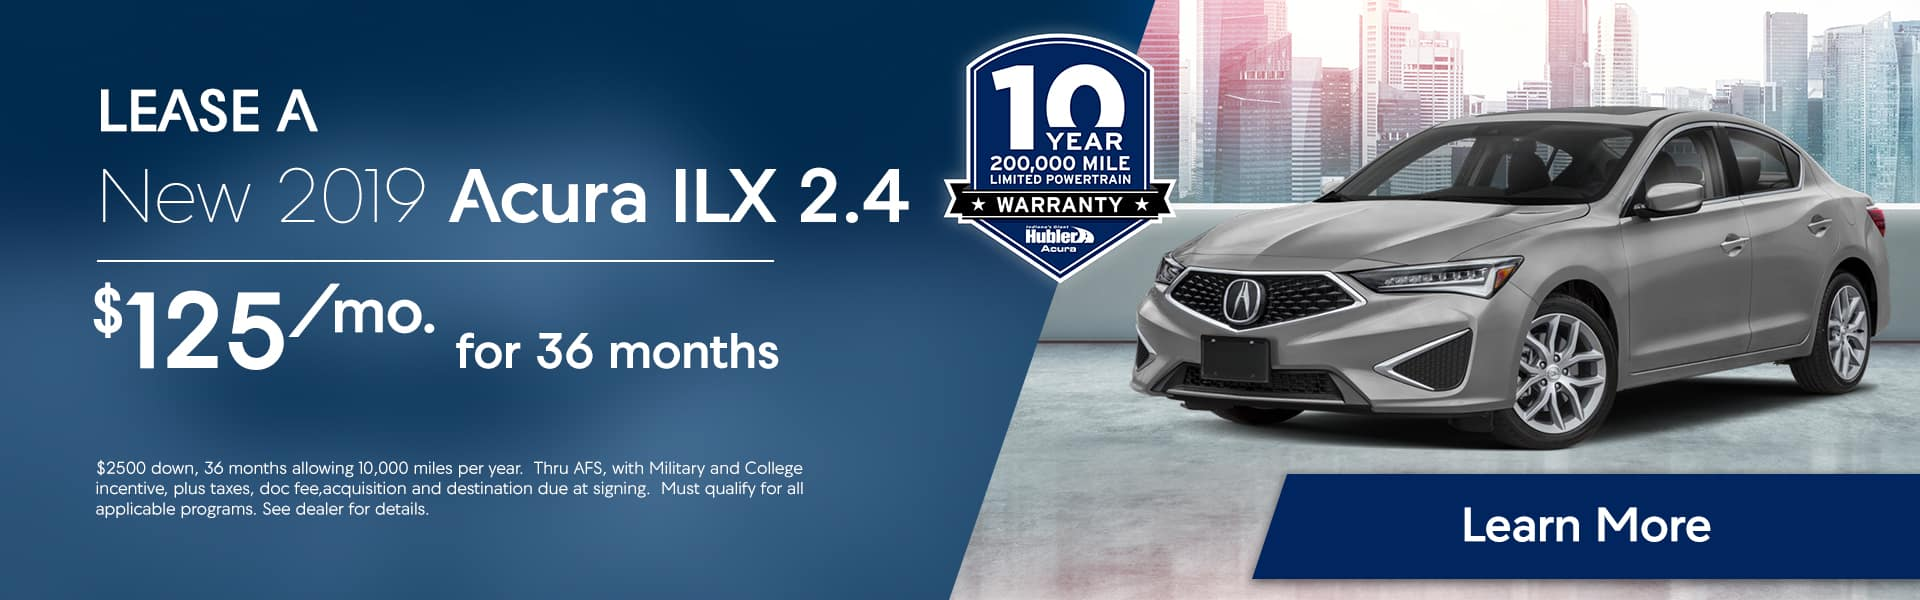 ILX offer for July at Hubler Acura